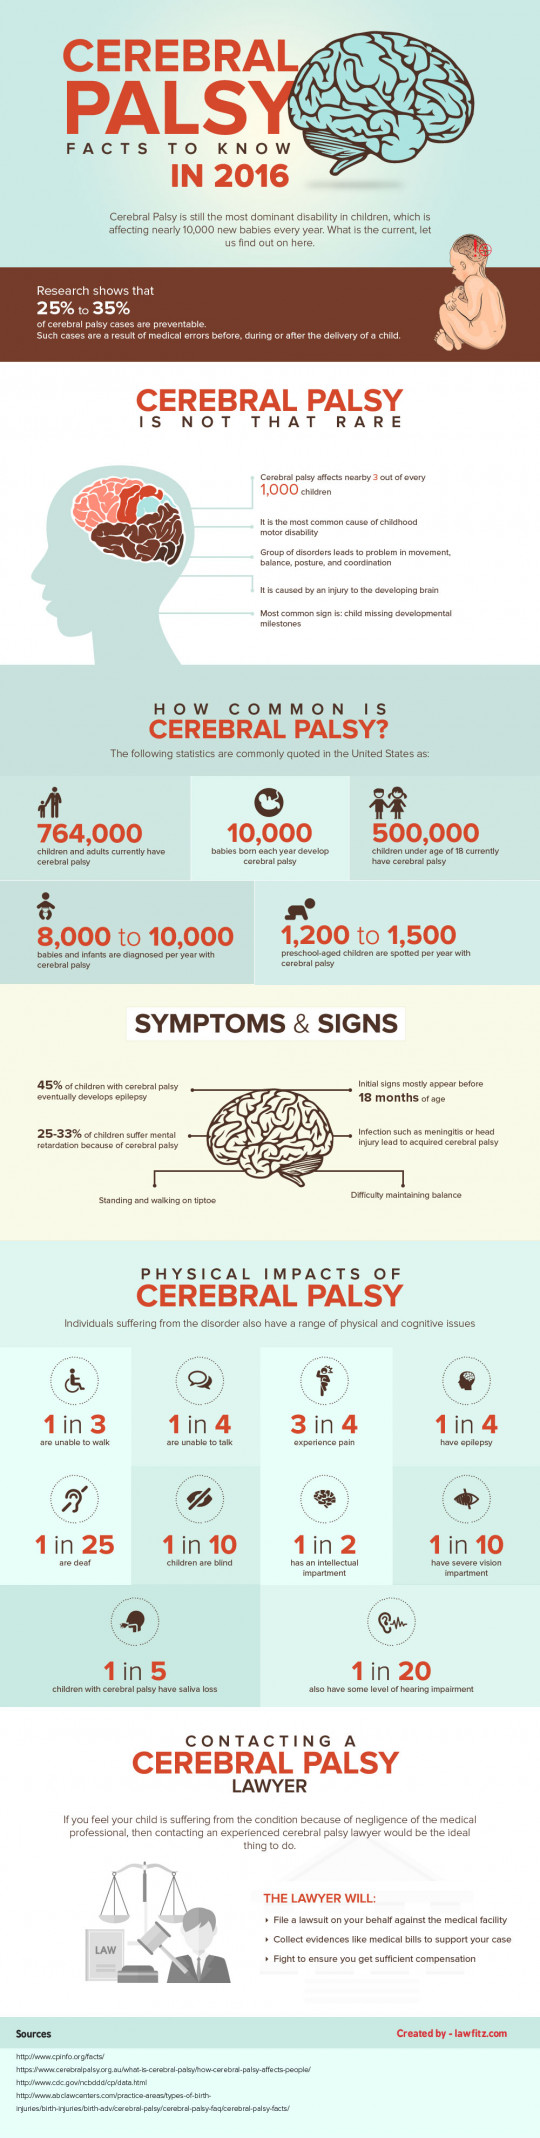 Cerebral Palsy Facts to Know in 2016